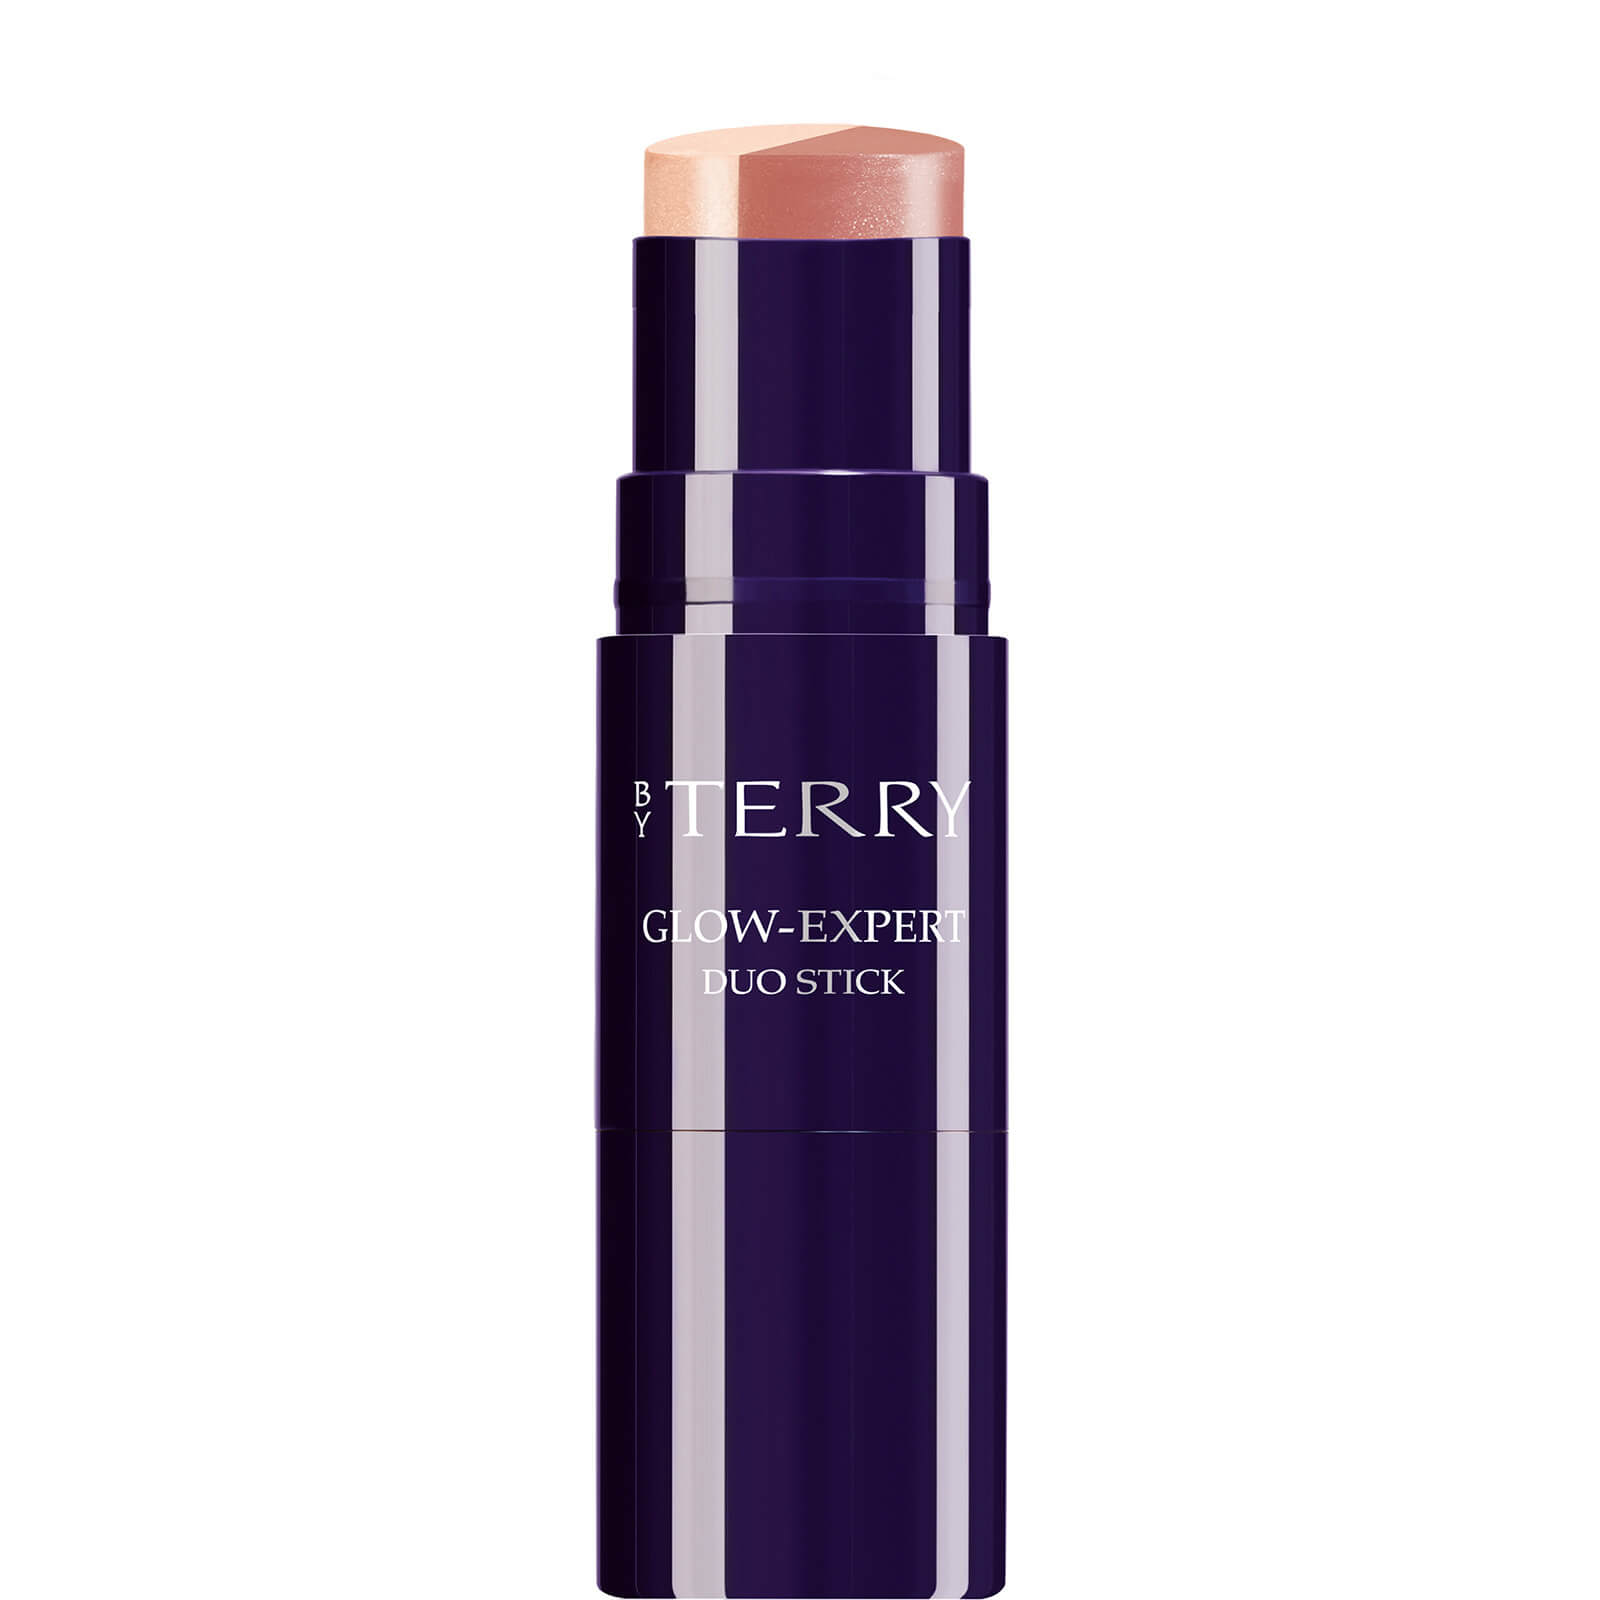 By Terry Glow-Expert Duo Stick - No.1 Amber Light 7.3g